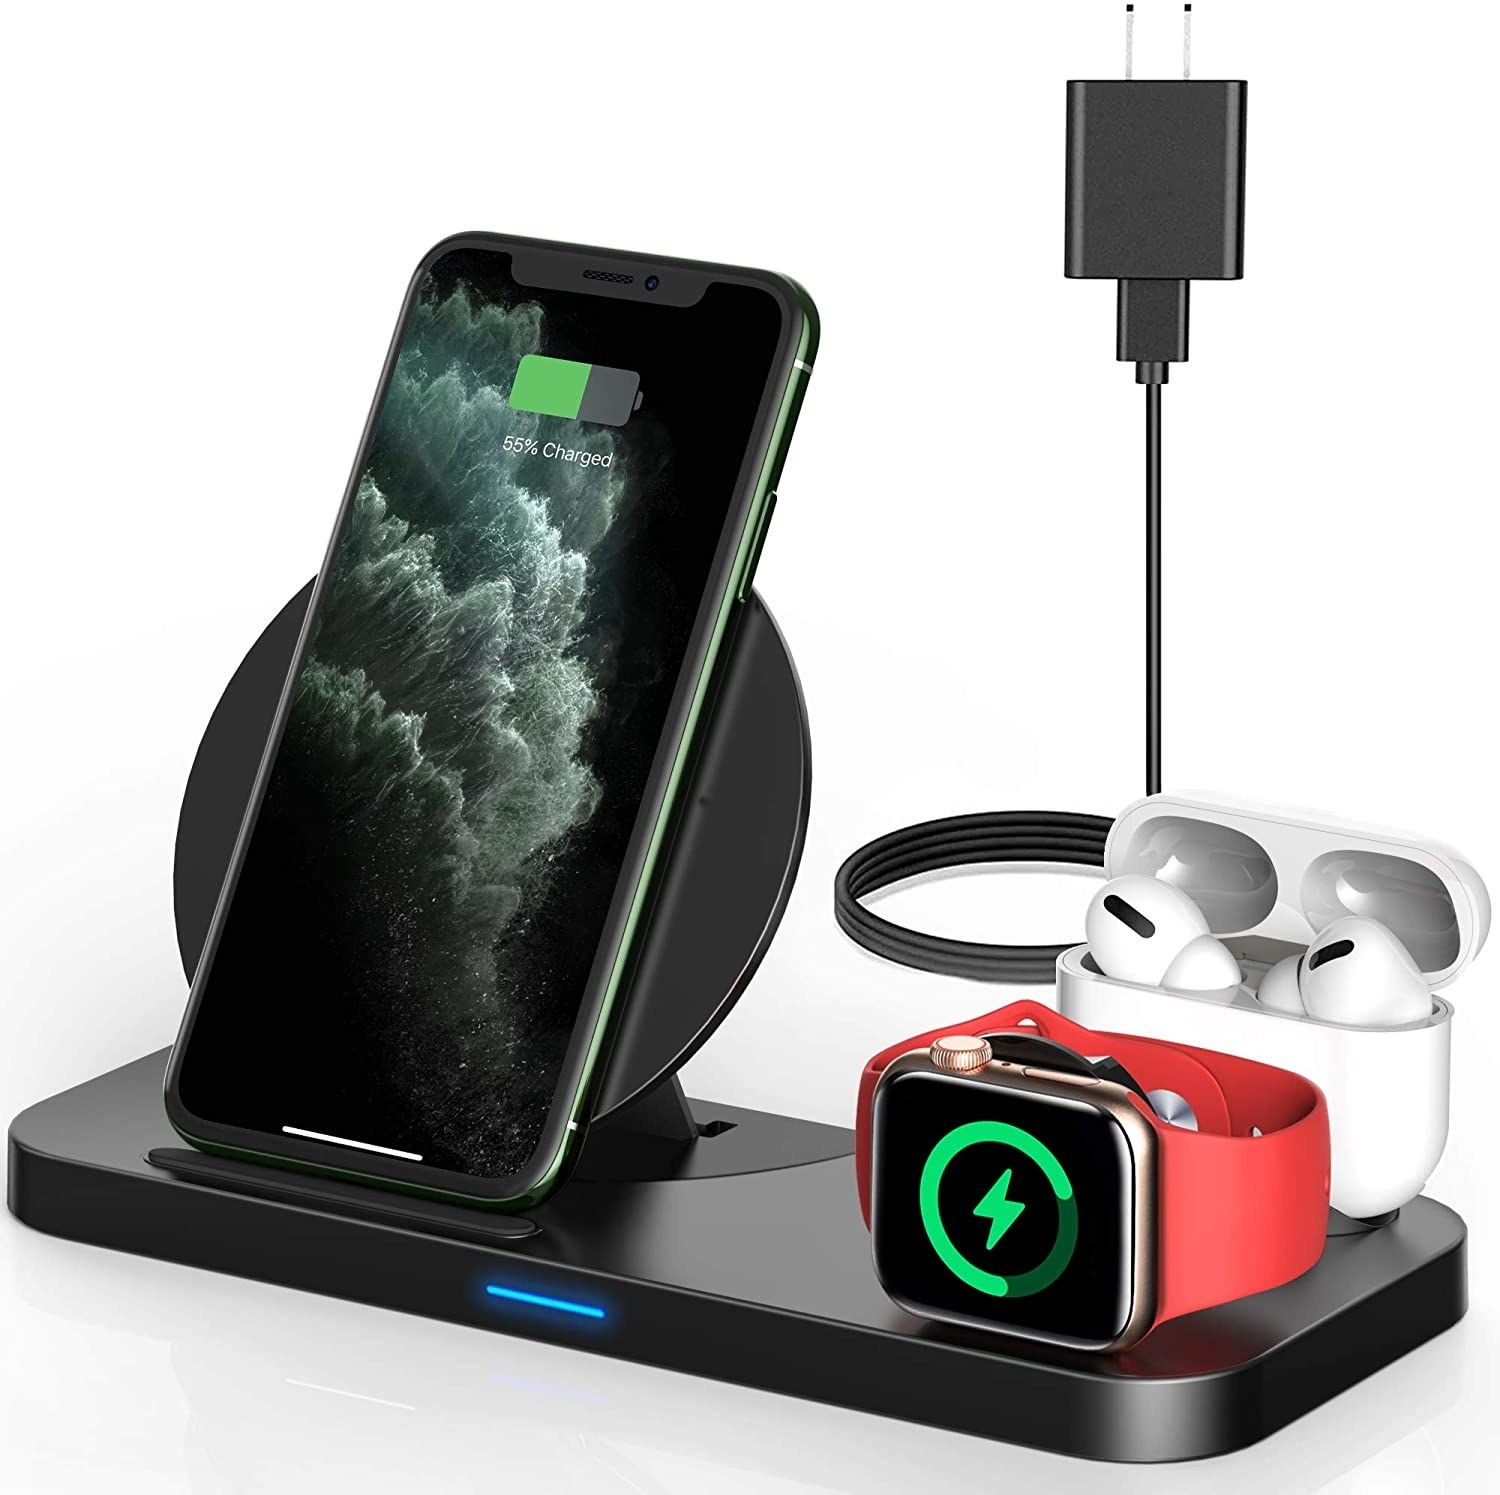 Three-in-one wireless charger with phone, Apple Watch and AirPods